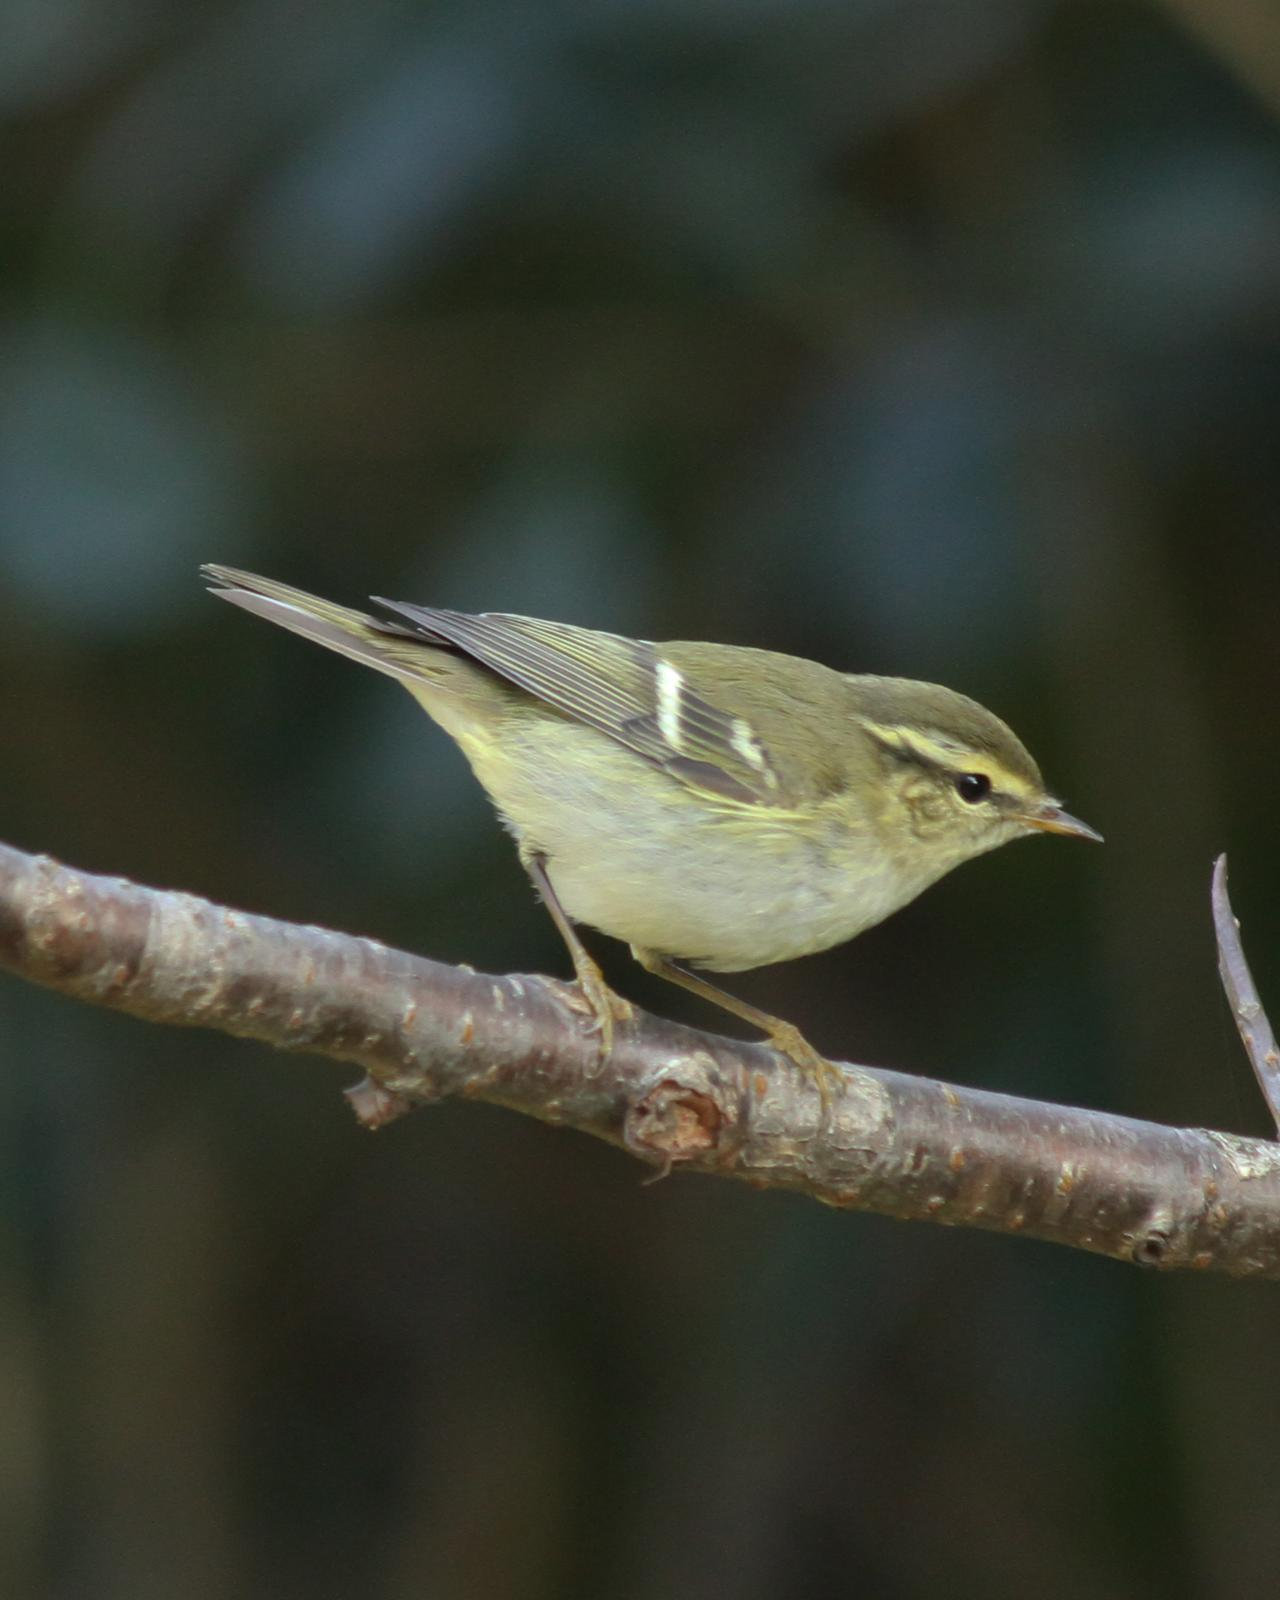 Yellow-browed Warbler Photo by Kasia  Ganderska Someya